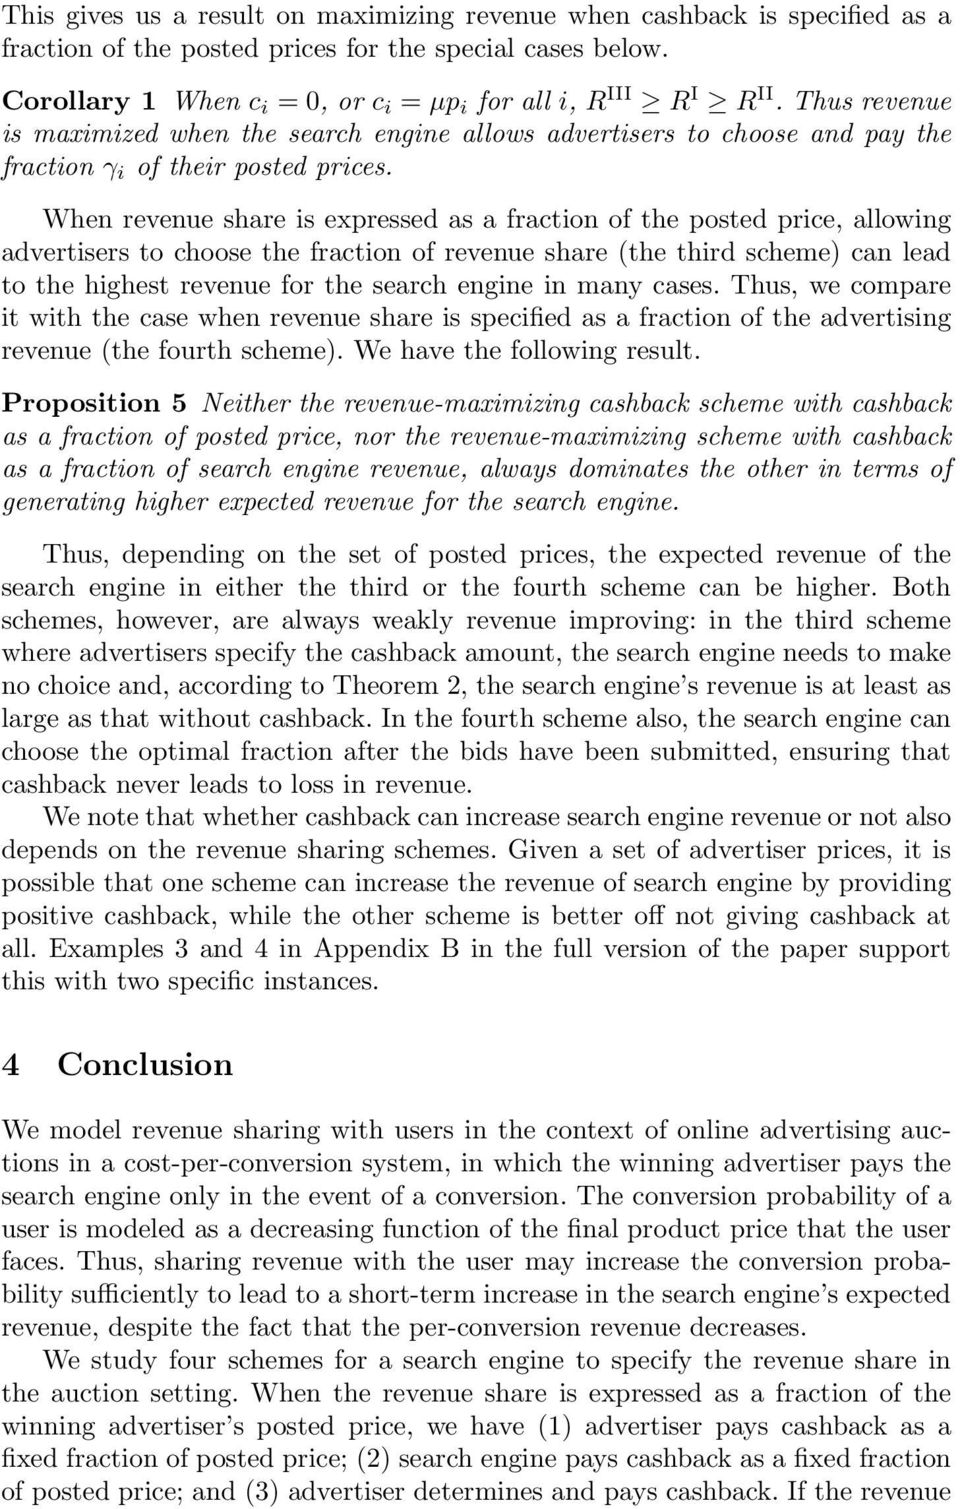 When revenue share is expressed as a fraction of the posted price, allowing advertisers to choose the fraction of revenue share (the third scheme) can lead to the highest revenue for the search